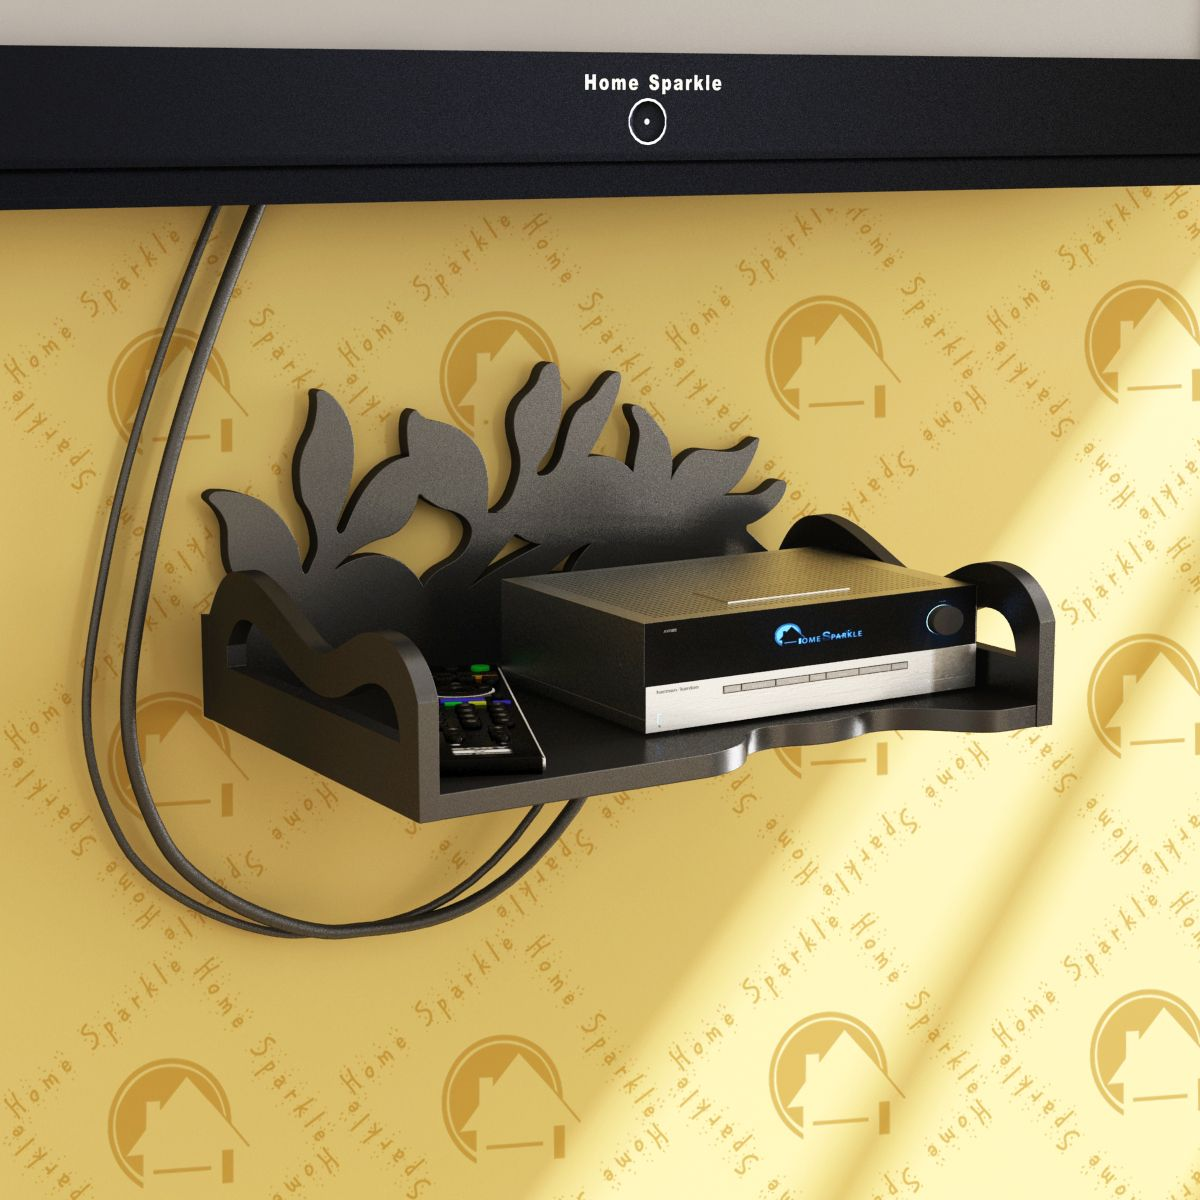 Home Sparkle Carved Set Top Box Holder/Wifi Modem Stand, Suitable For Living Room/ Bedroom ( Designed By Craftsman)